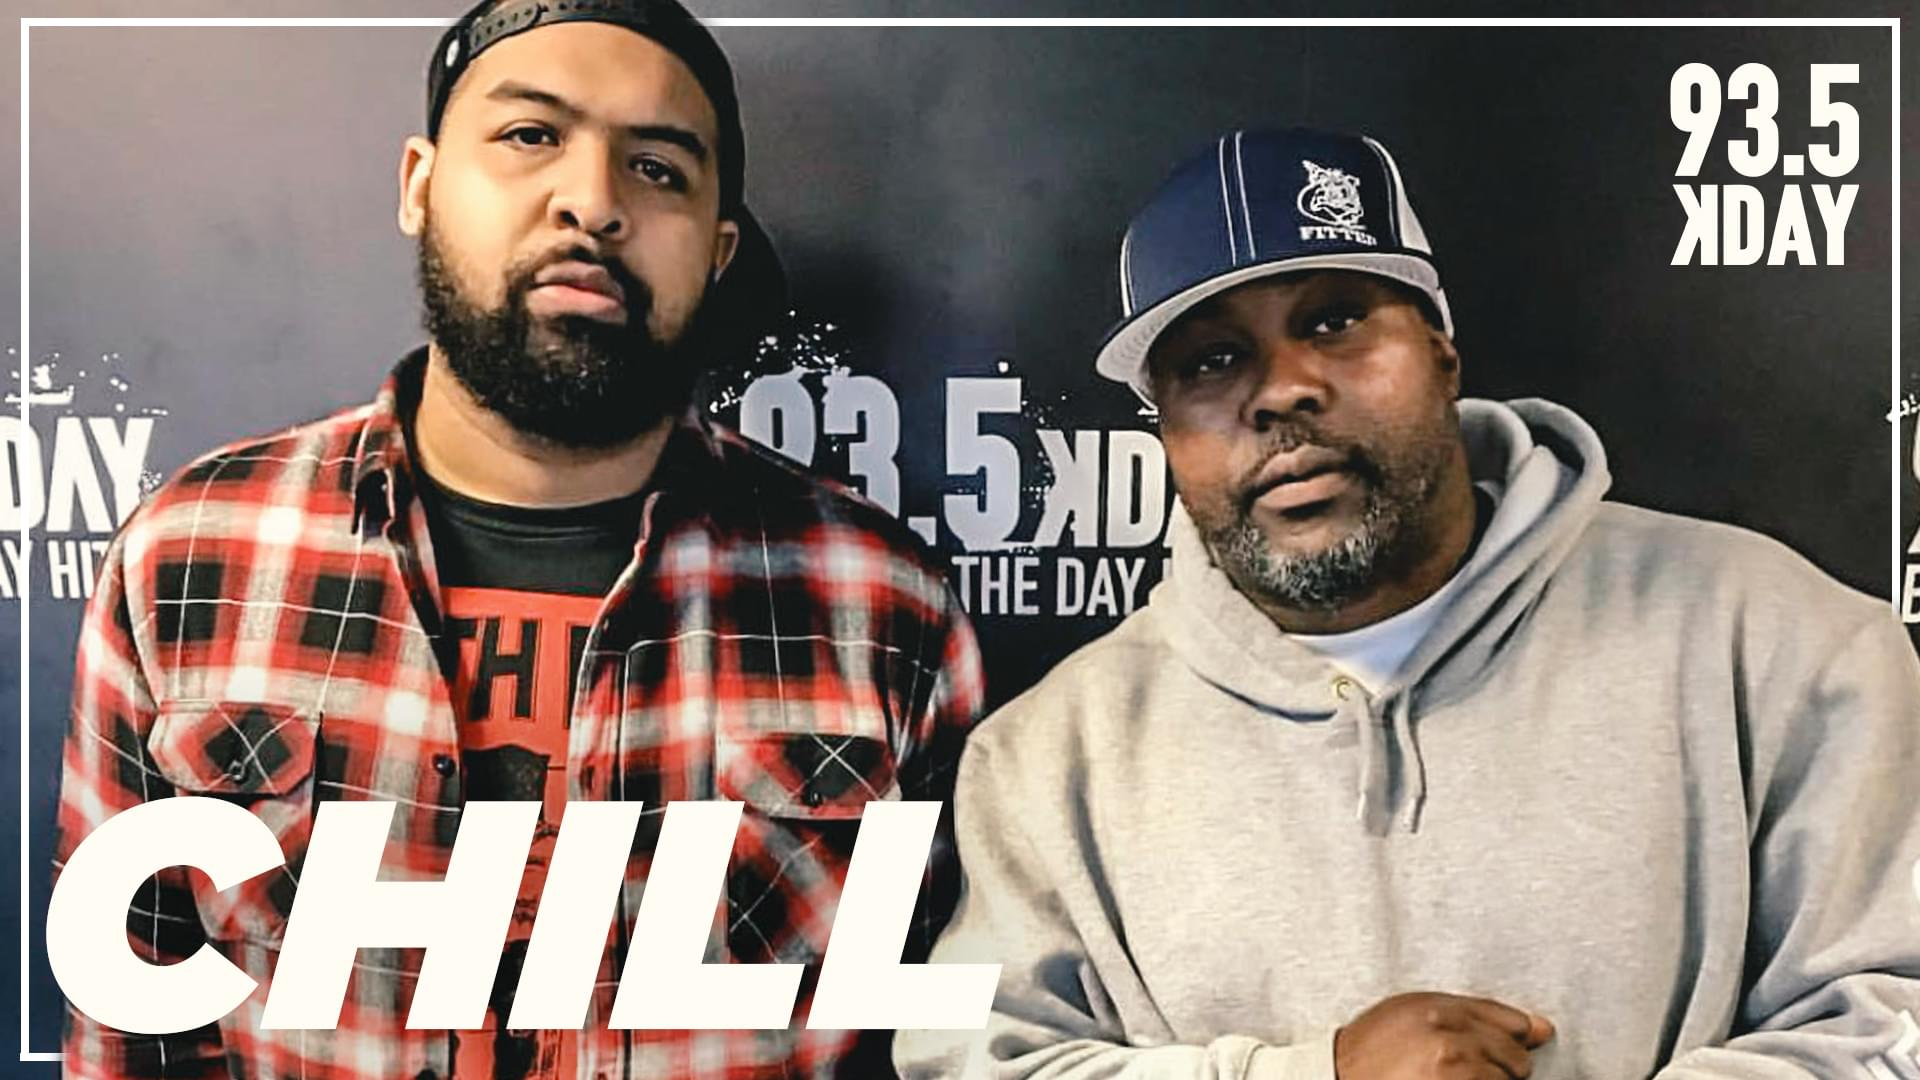 Tha Chill On New Album '4wit80', Compton's Most Wanted